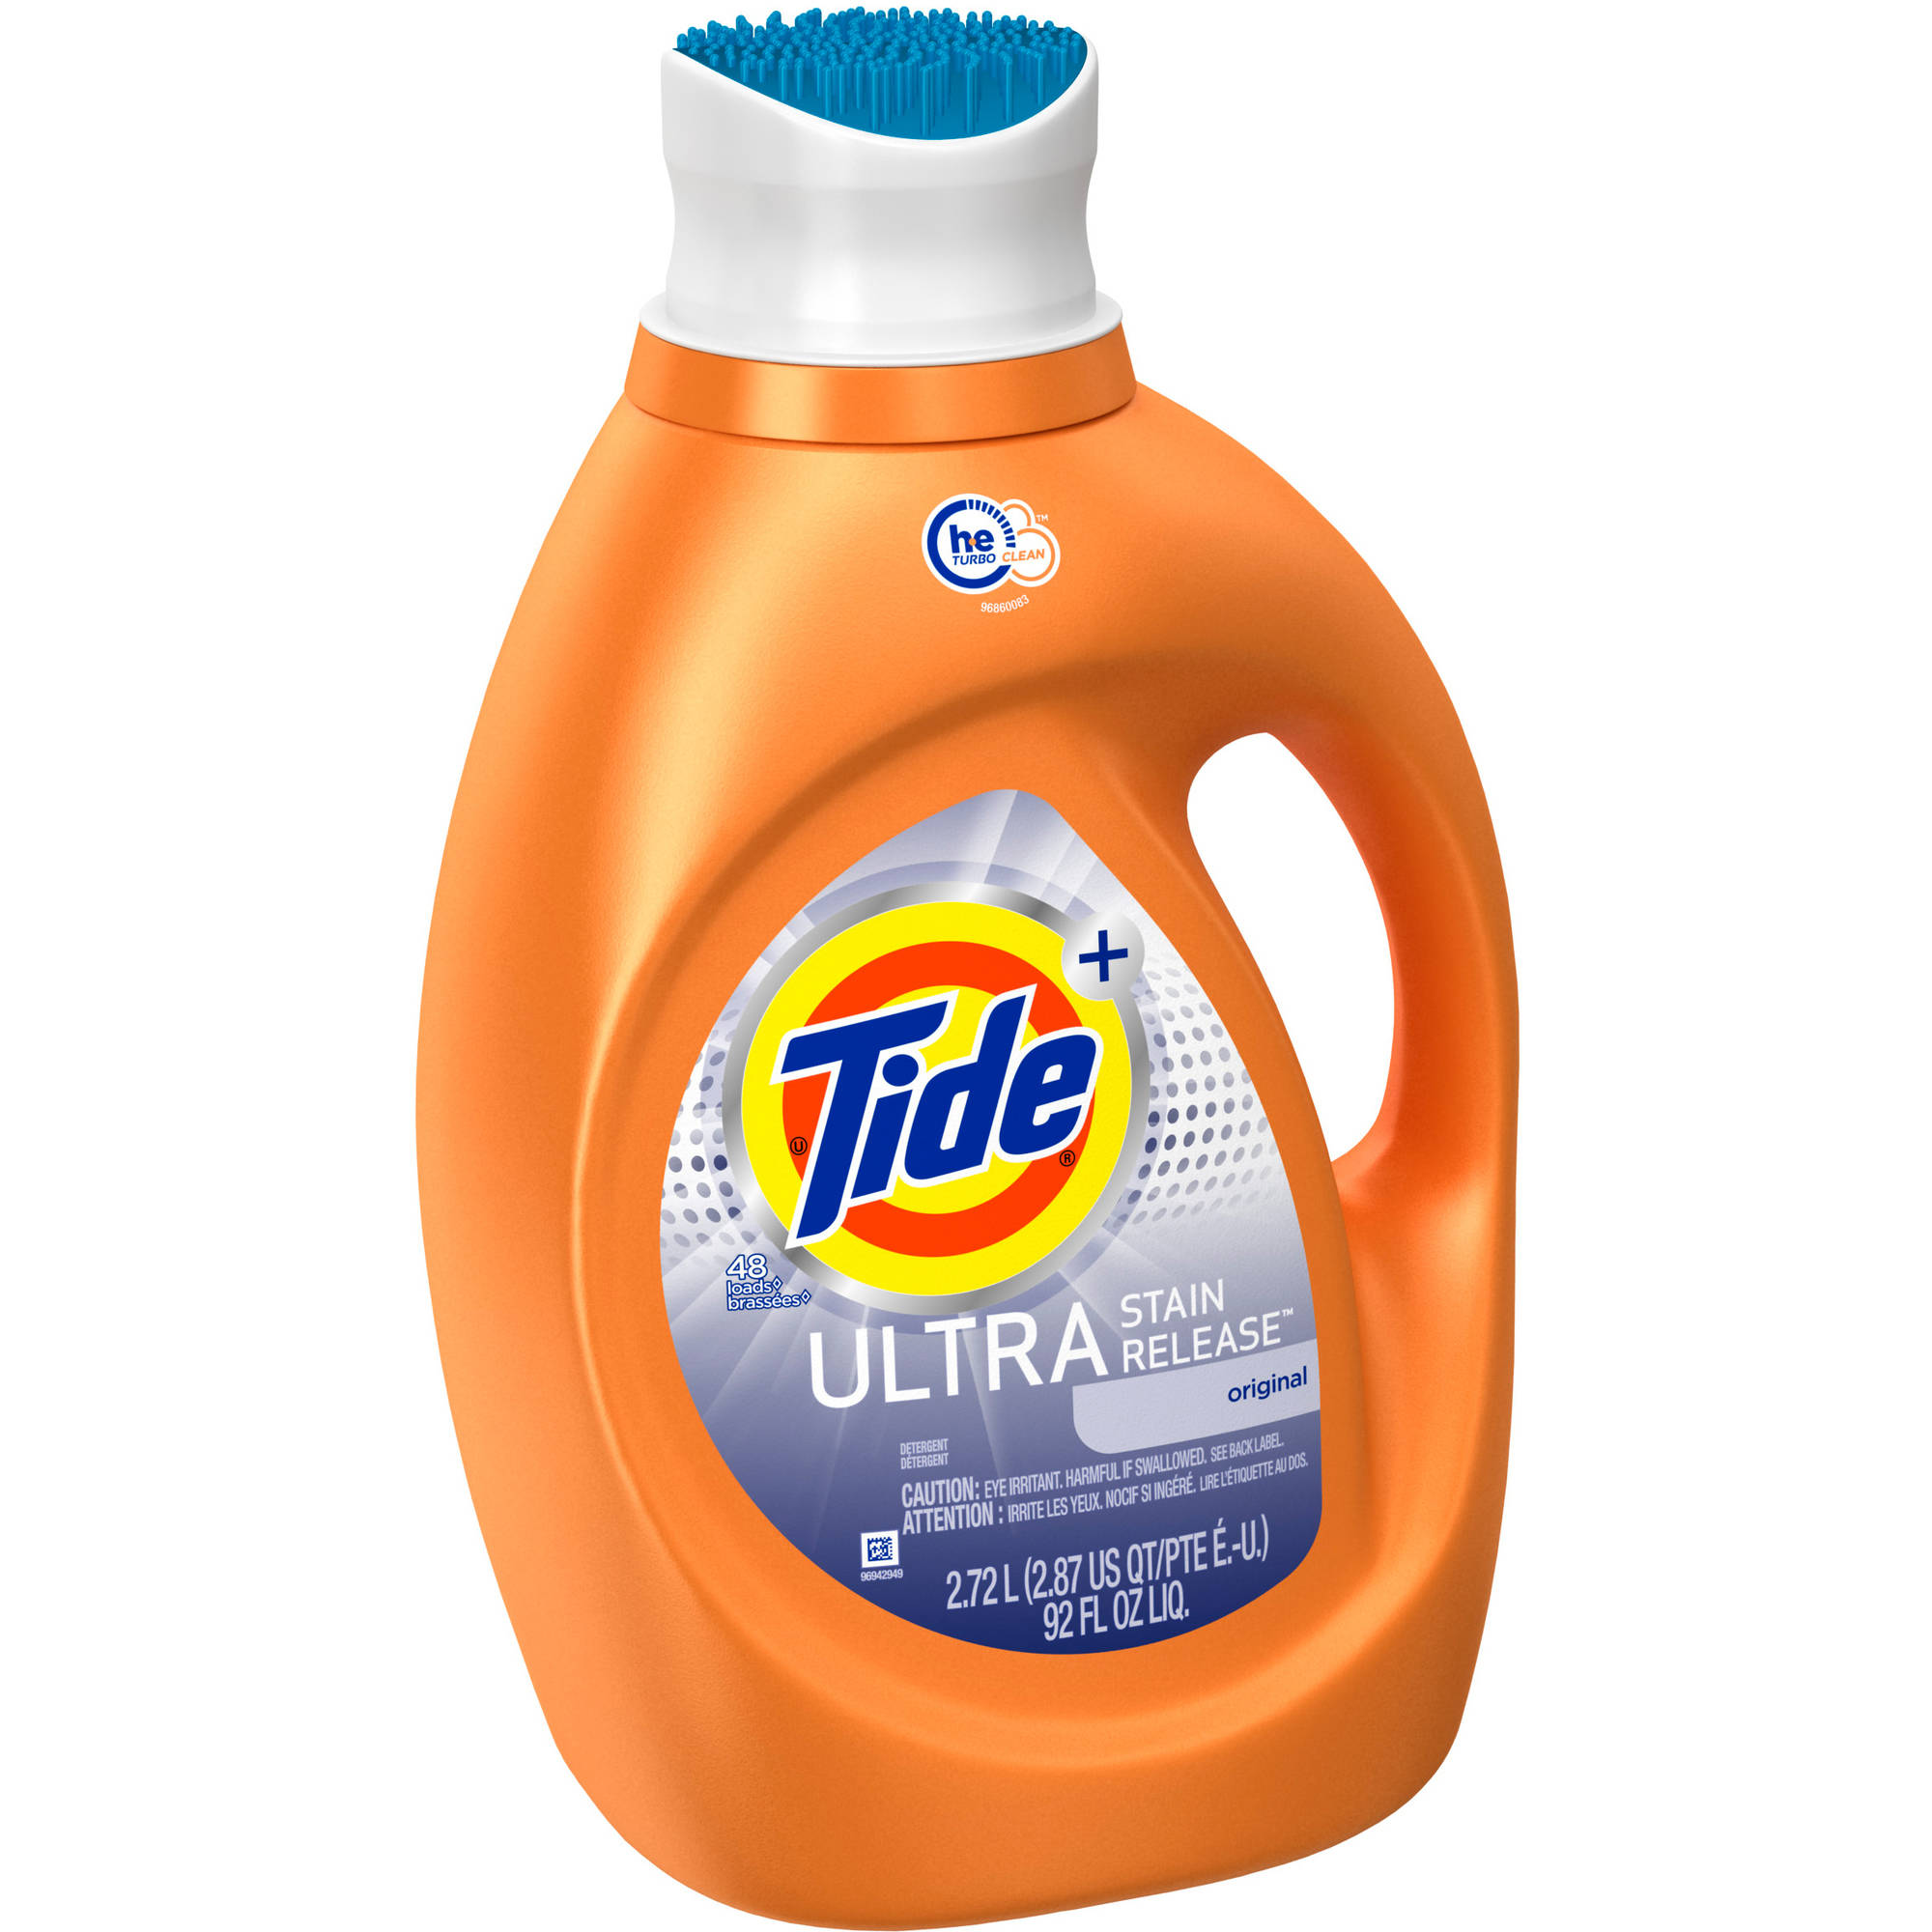 Tide Ultra Stain Release HE Turbo Clean Liquid Laundry Detergent, 48 Loads 92 oz